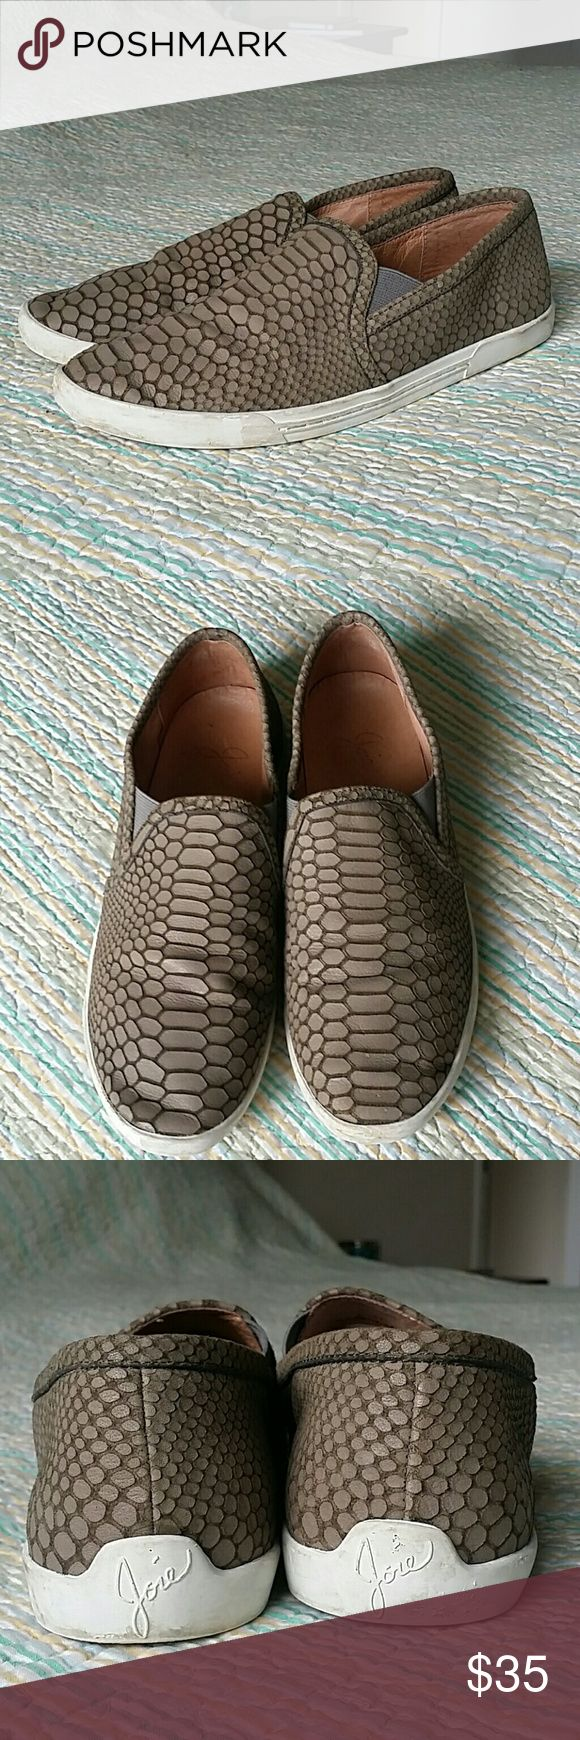 JOIE Kidmore Flint Taupe Python Embossed Leather 7 JOIE Kidmore Flint Taupe Gray Python Embossed Leather Slip On Sneaker Sz 37 US 7 Joie Shoes Flats & Loafers